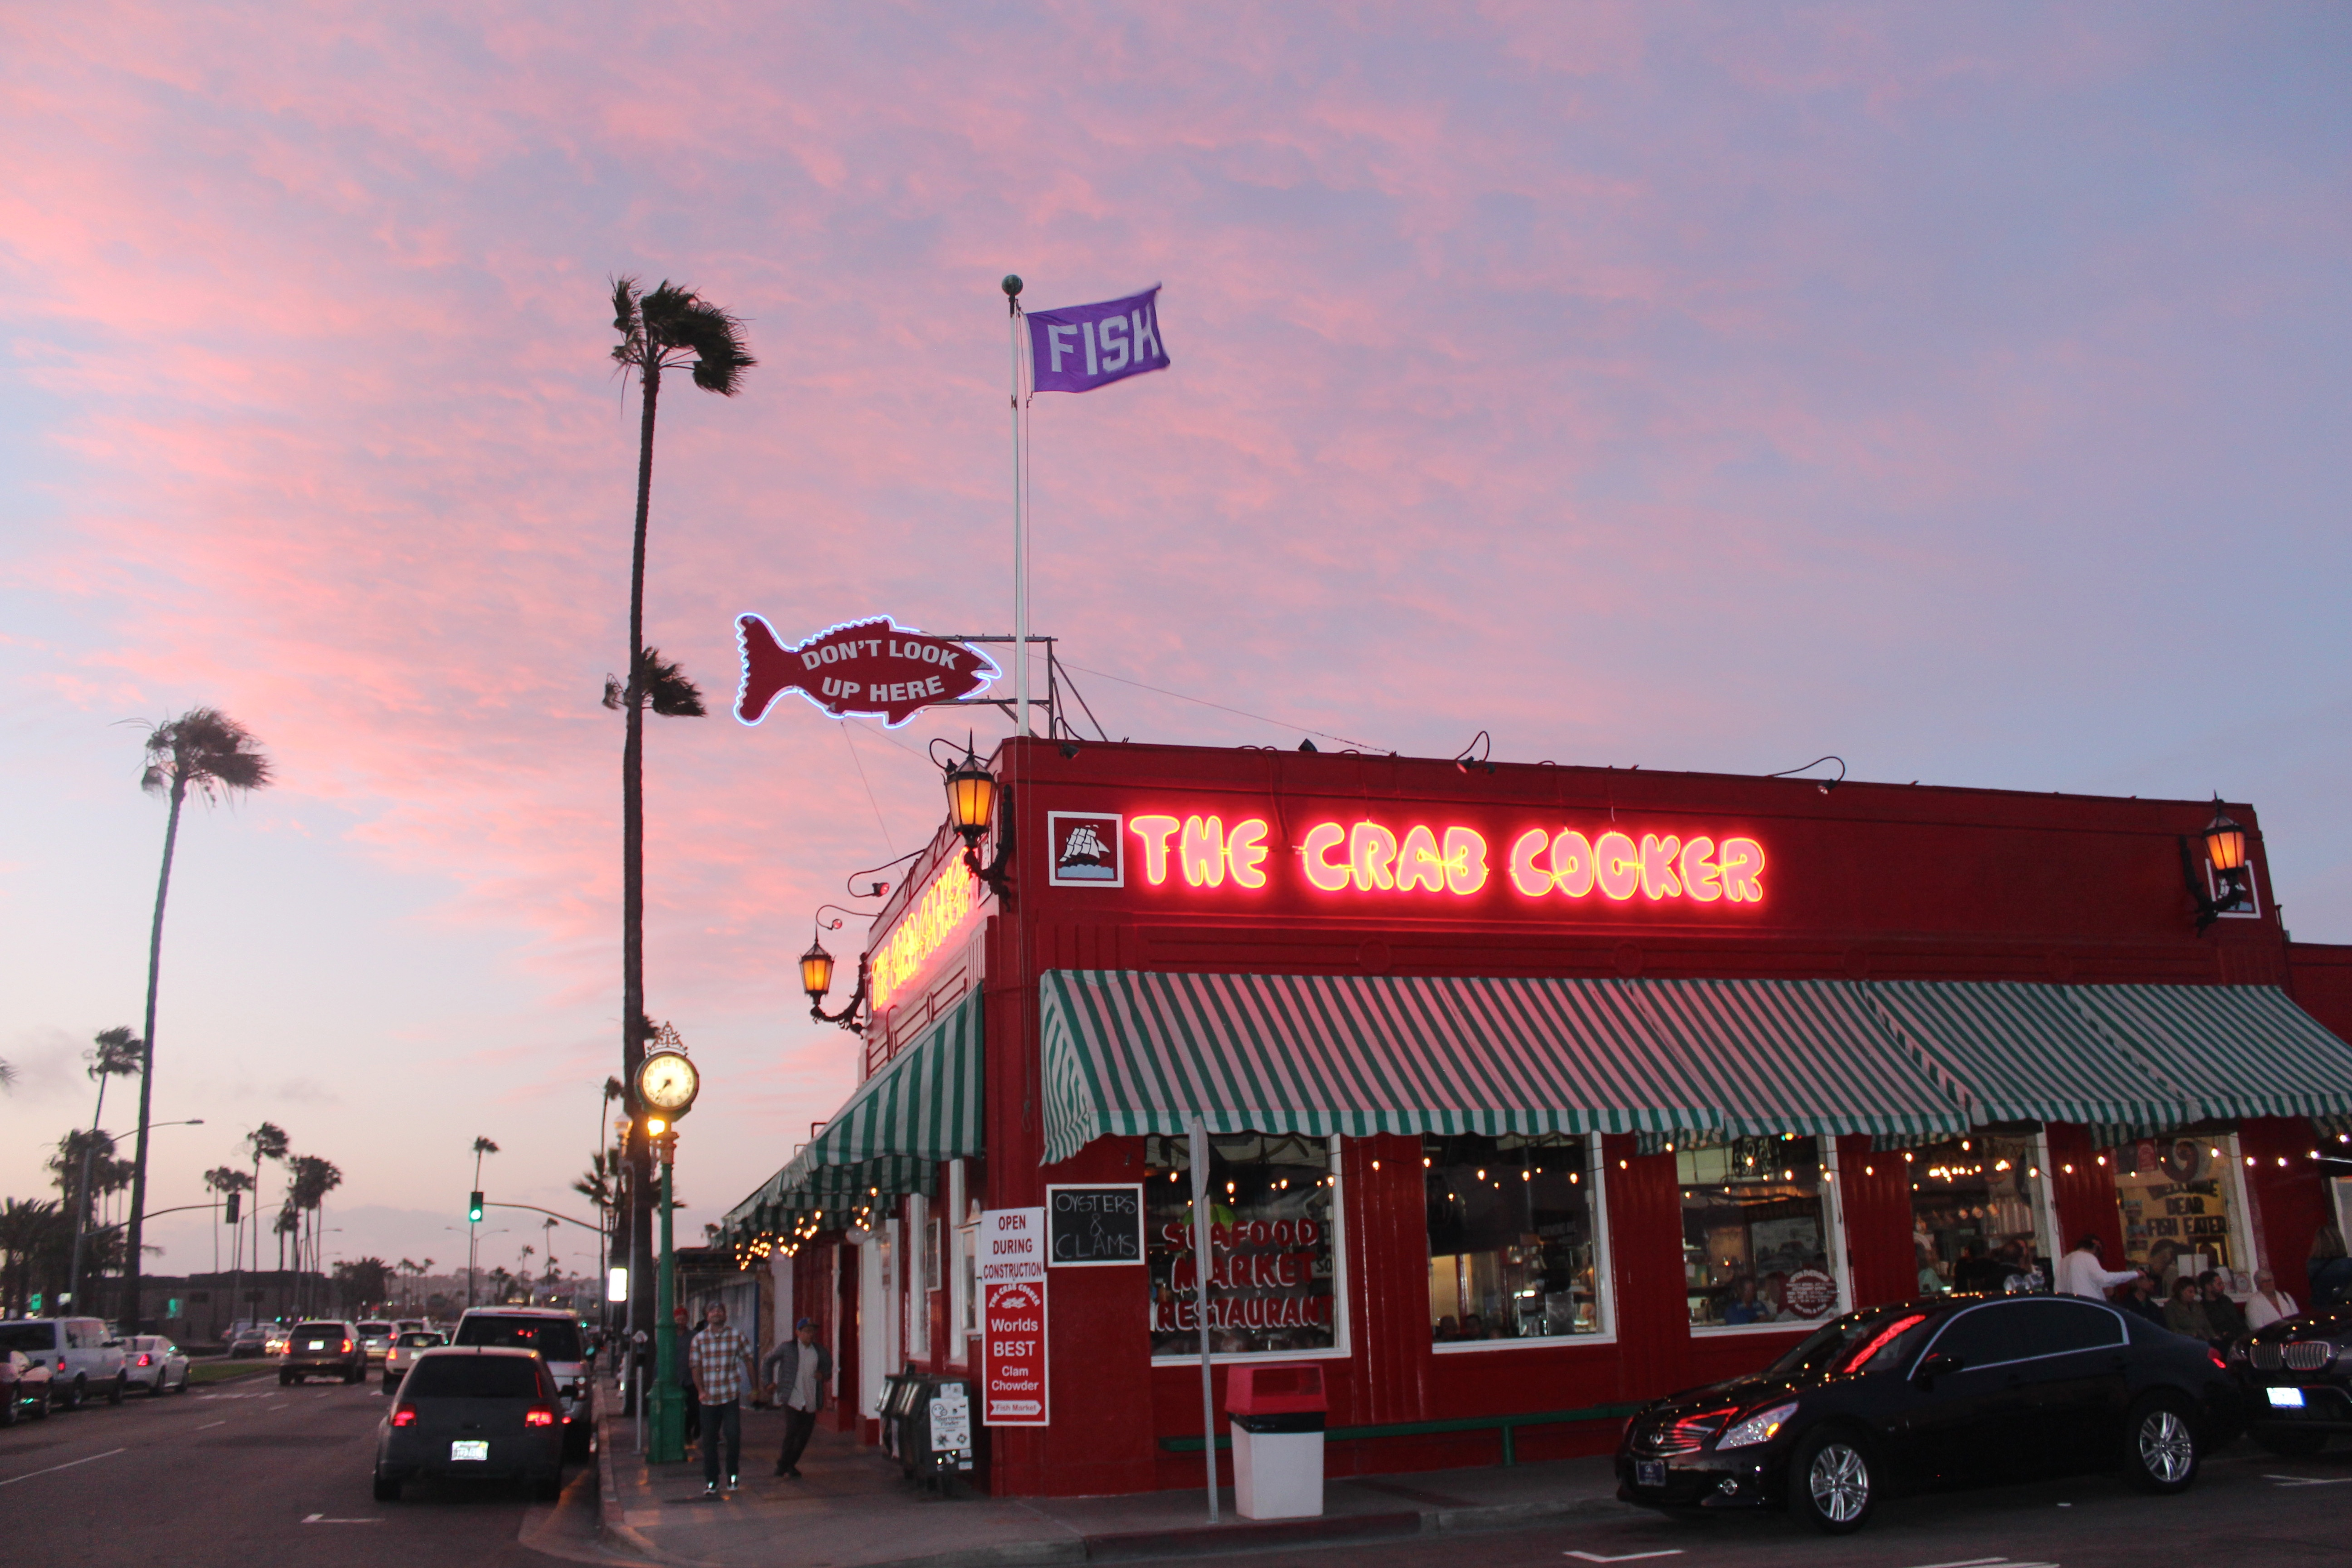 seafood in socal: the crab cooker